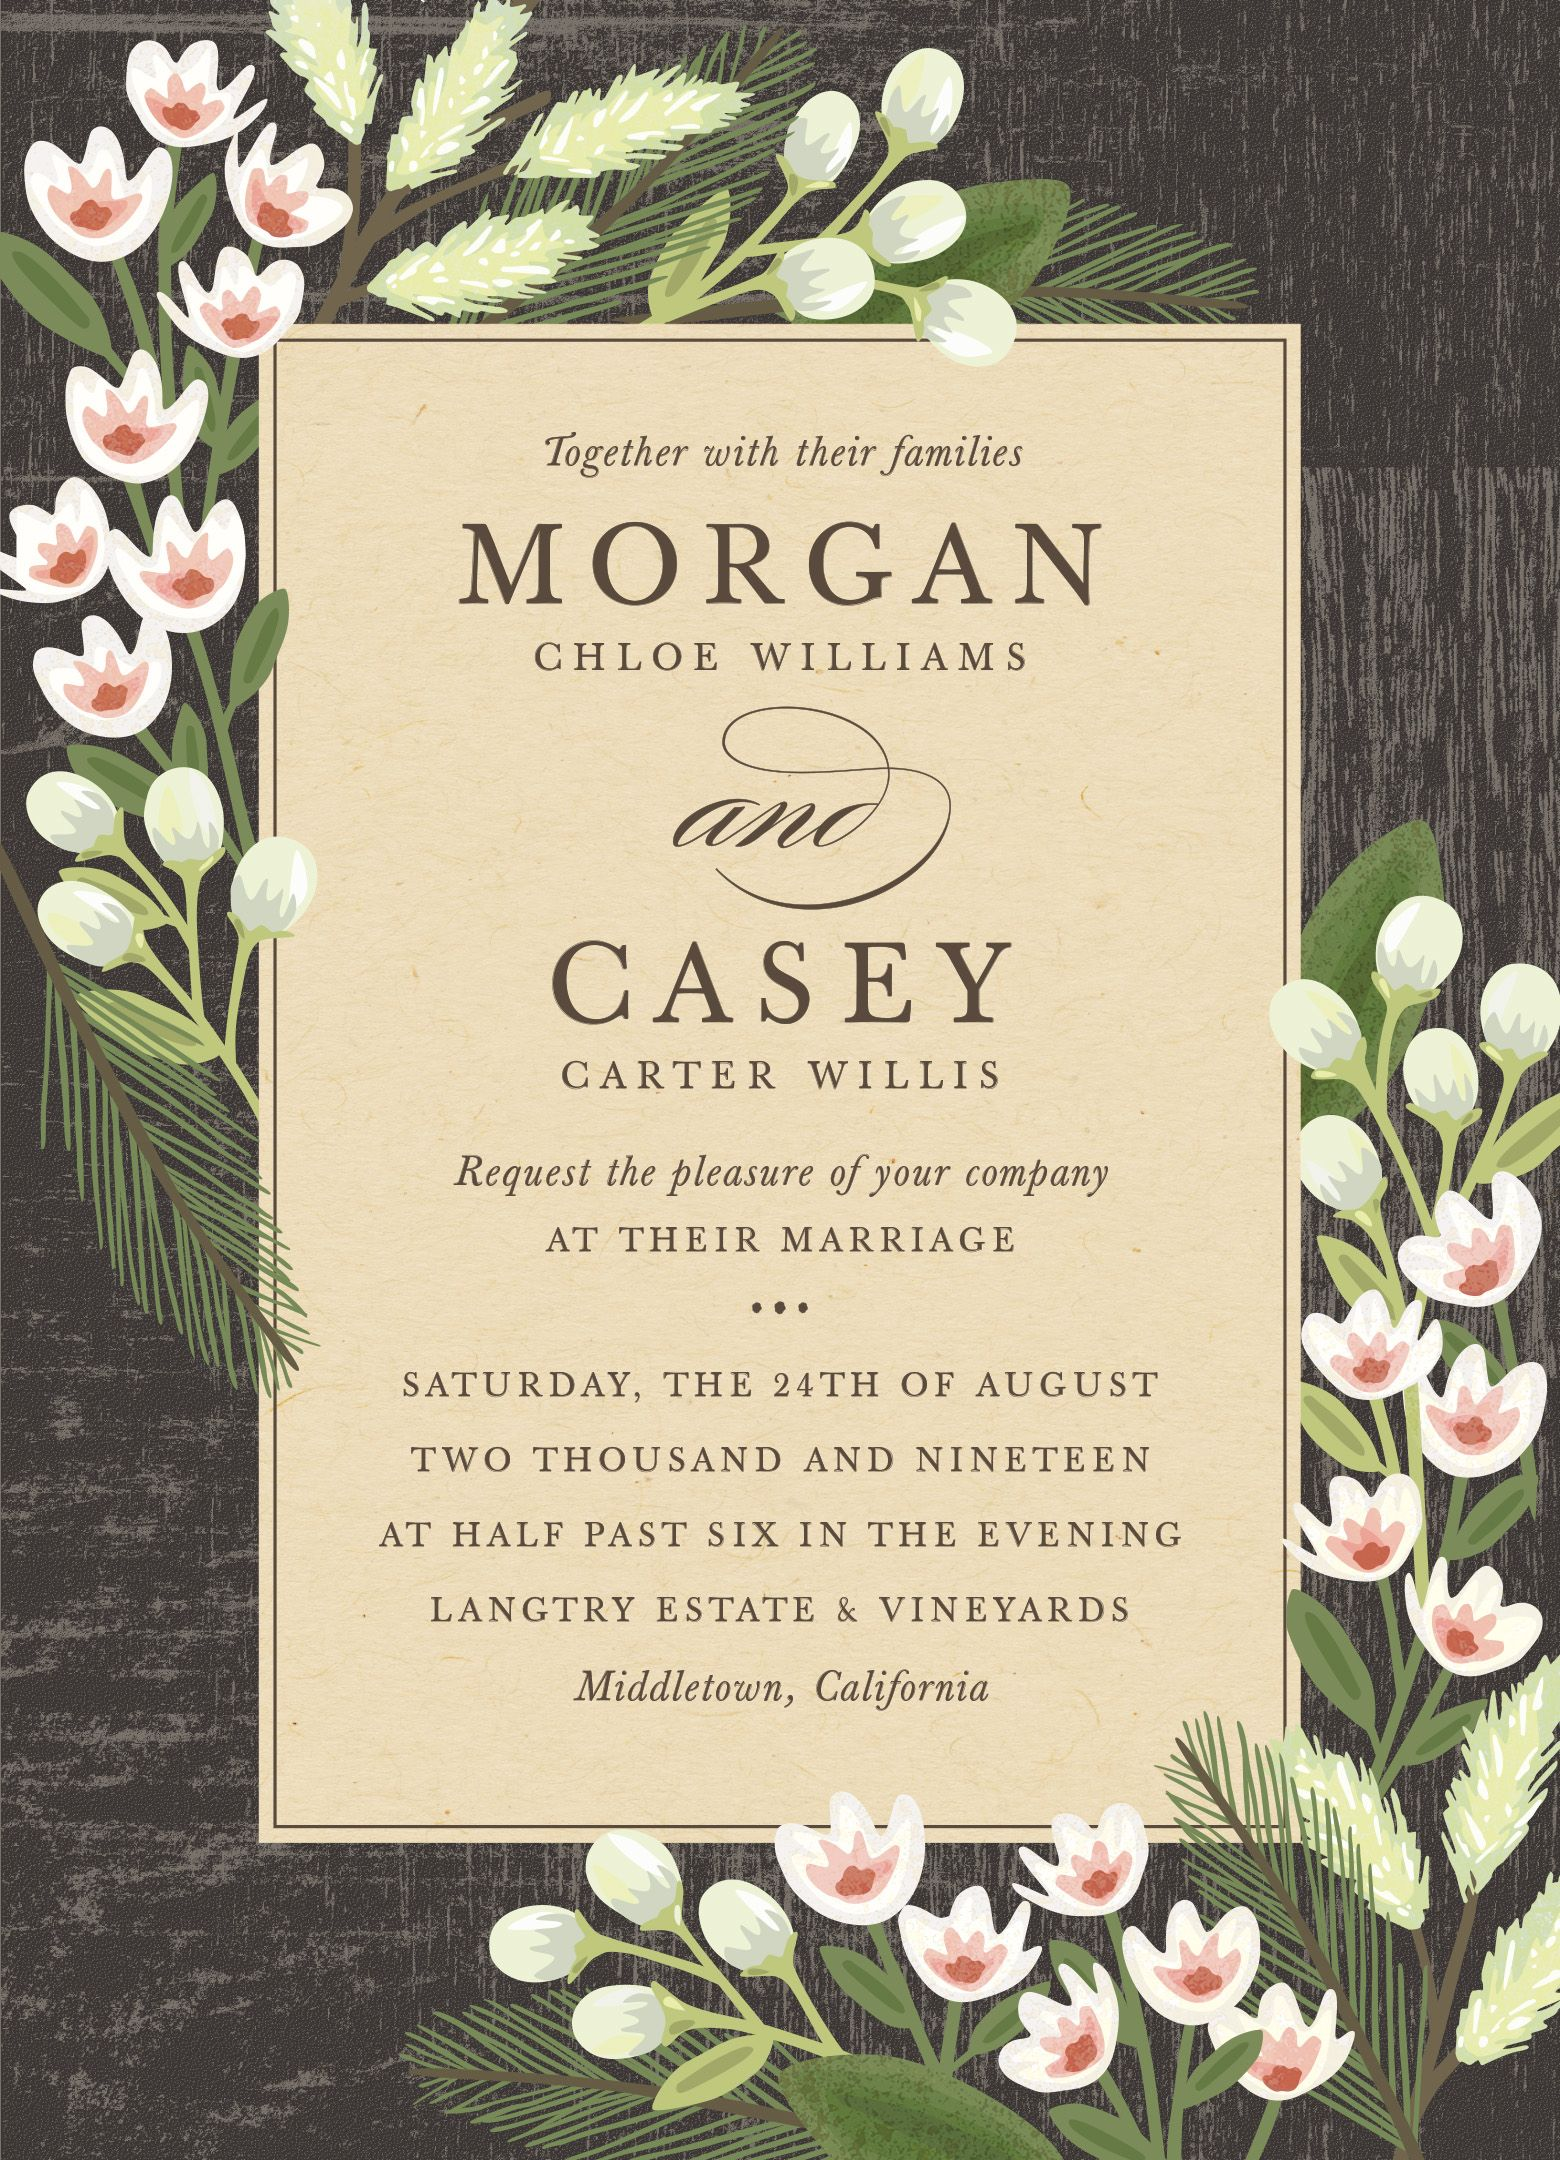 wedding invitation design psd%0A Rustic garden floral wedding invitation design by Minted artist   Griffenbell Paper Co  Available on